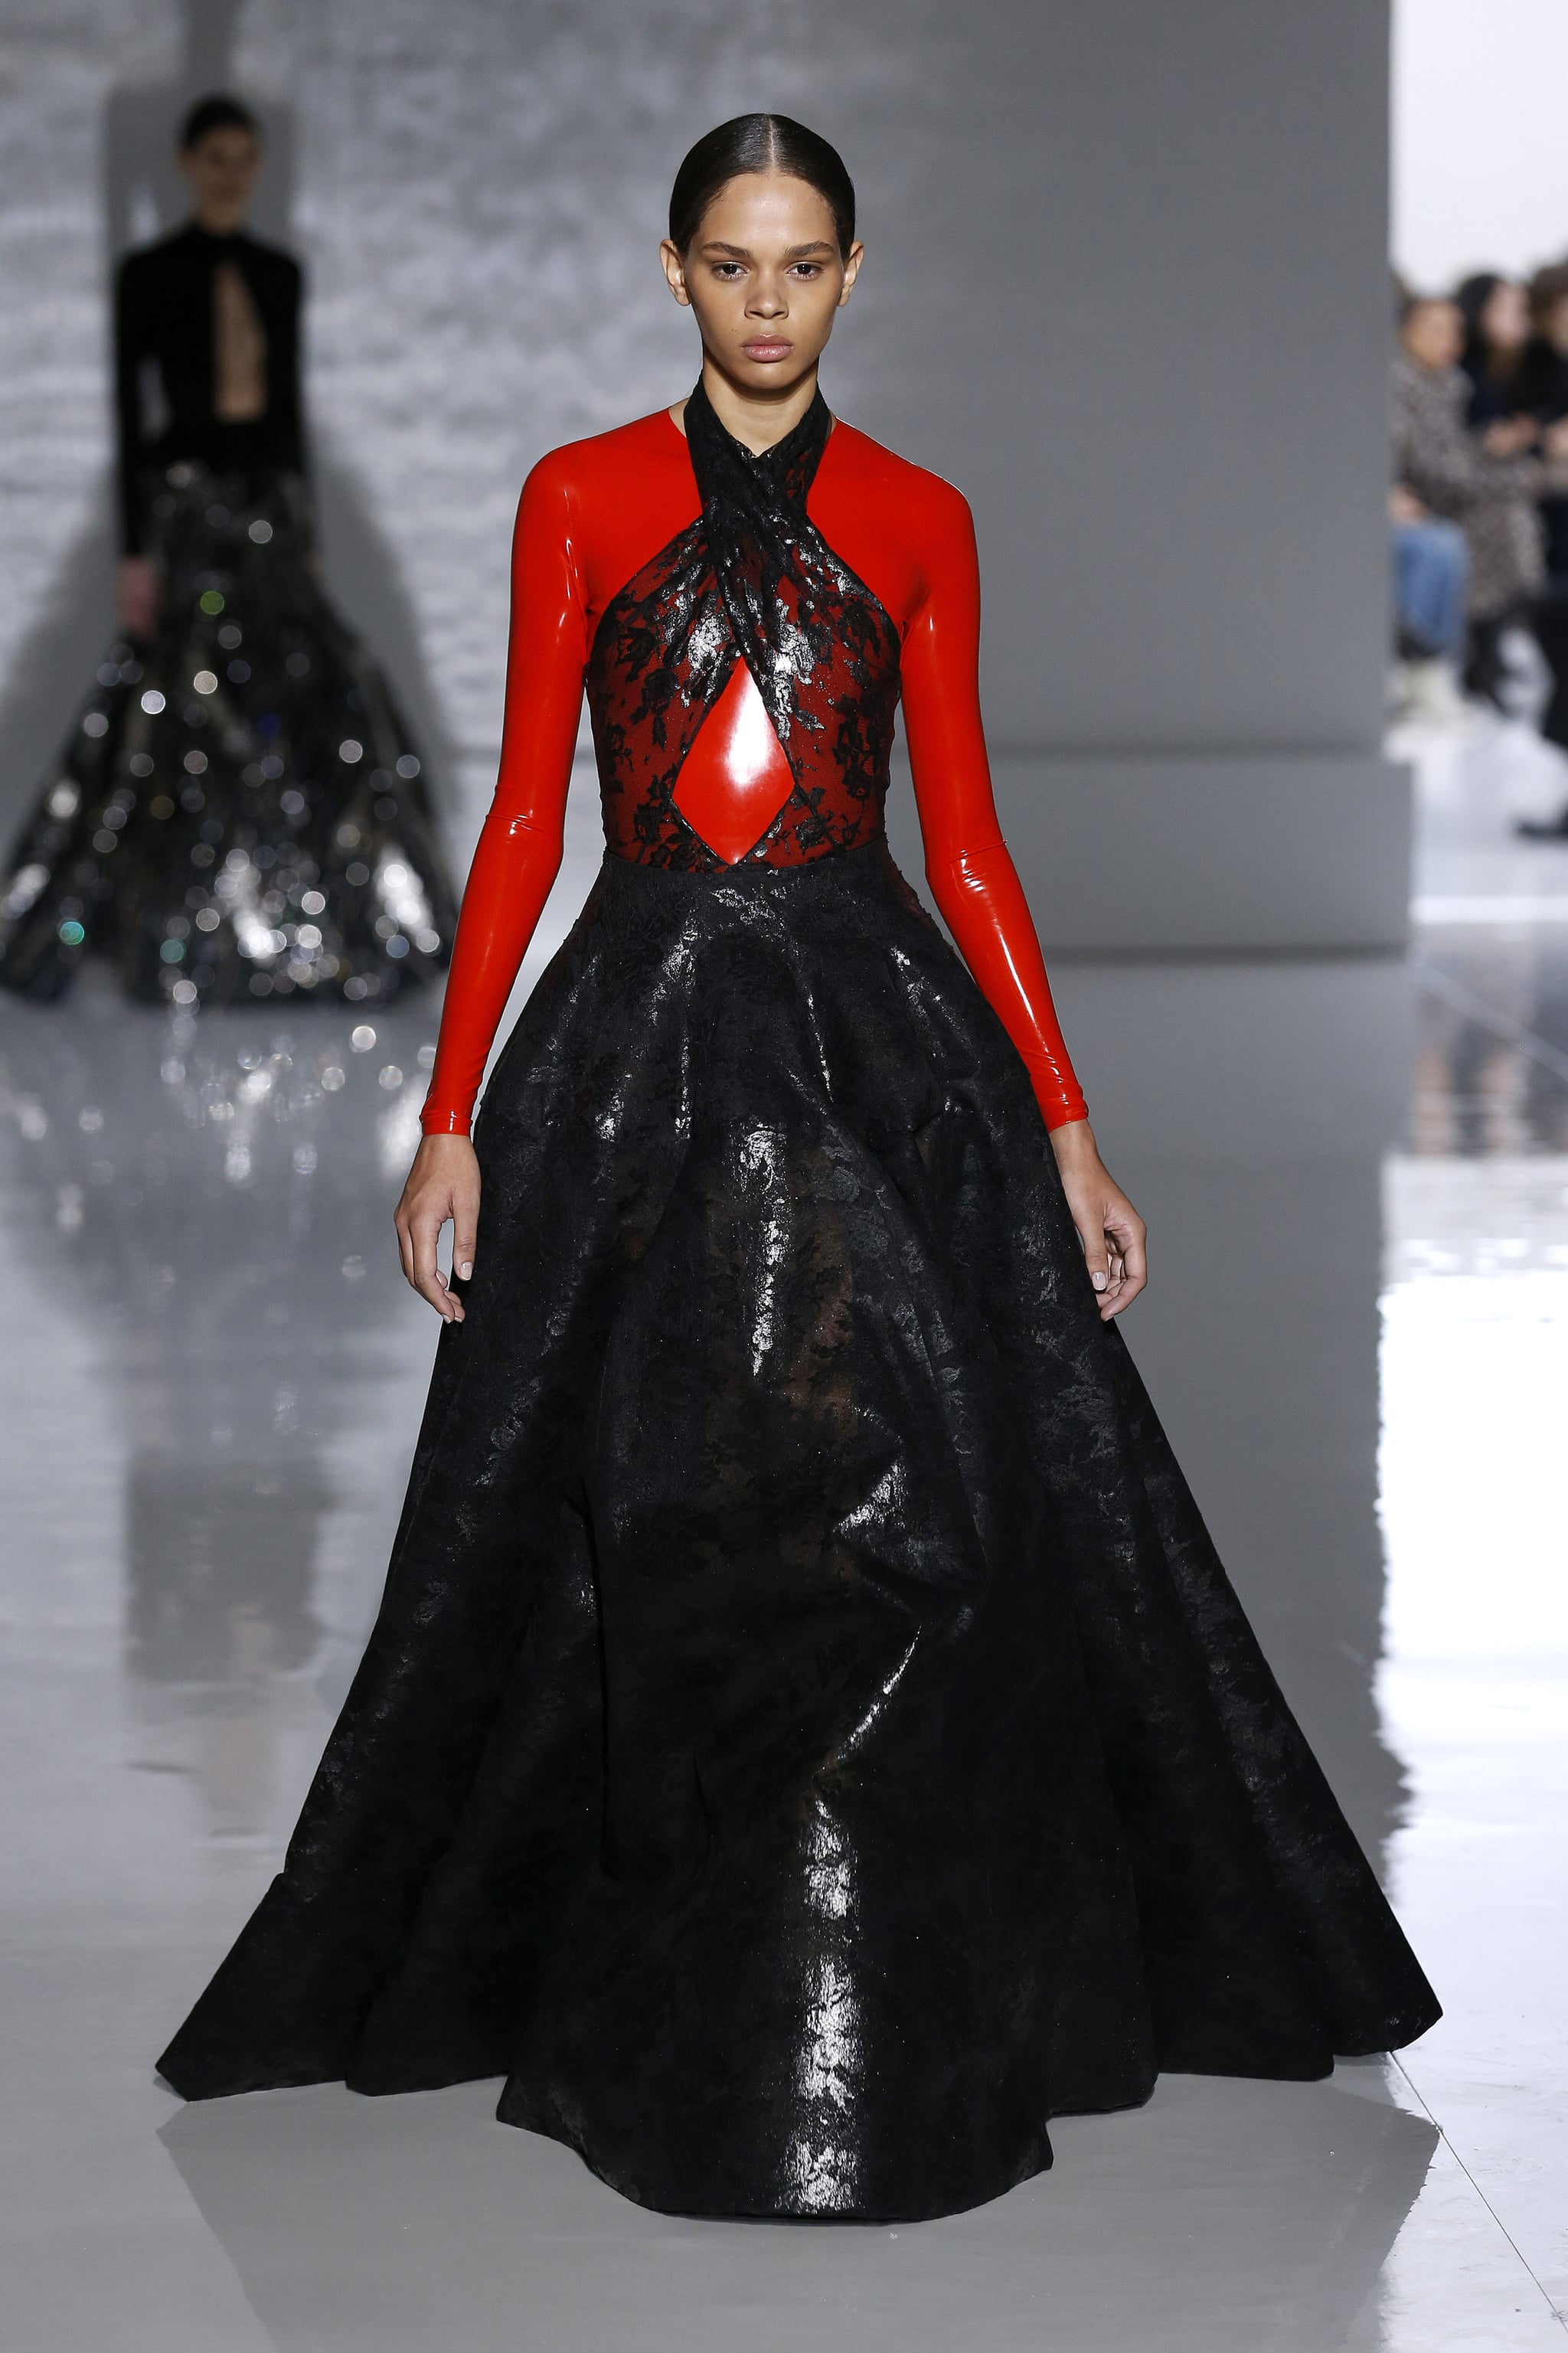 givenchy haute couture 20 Off 20